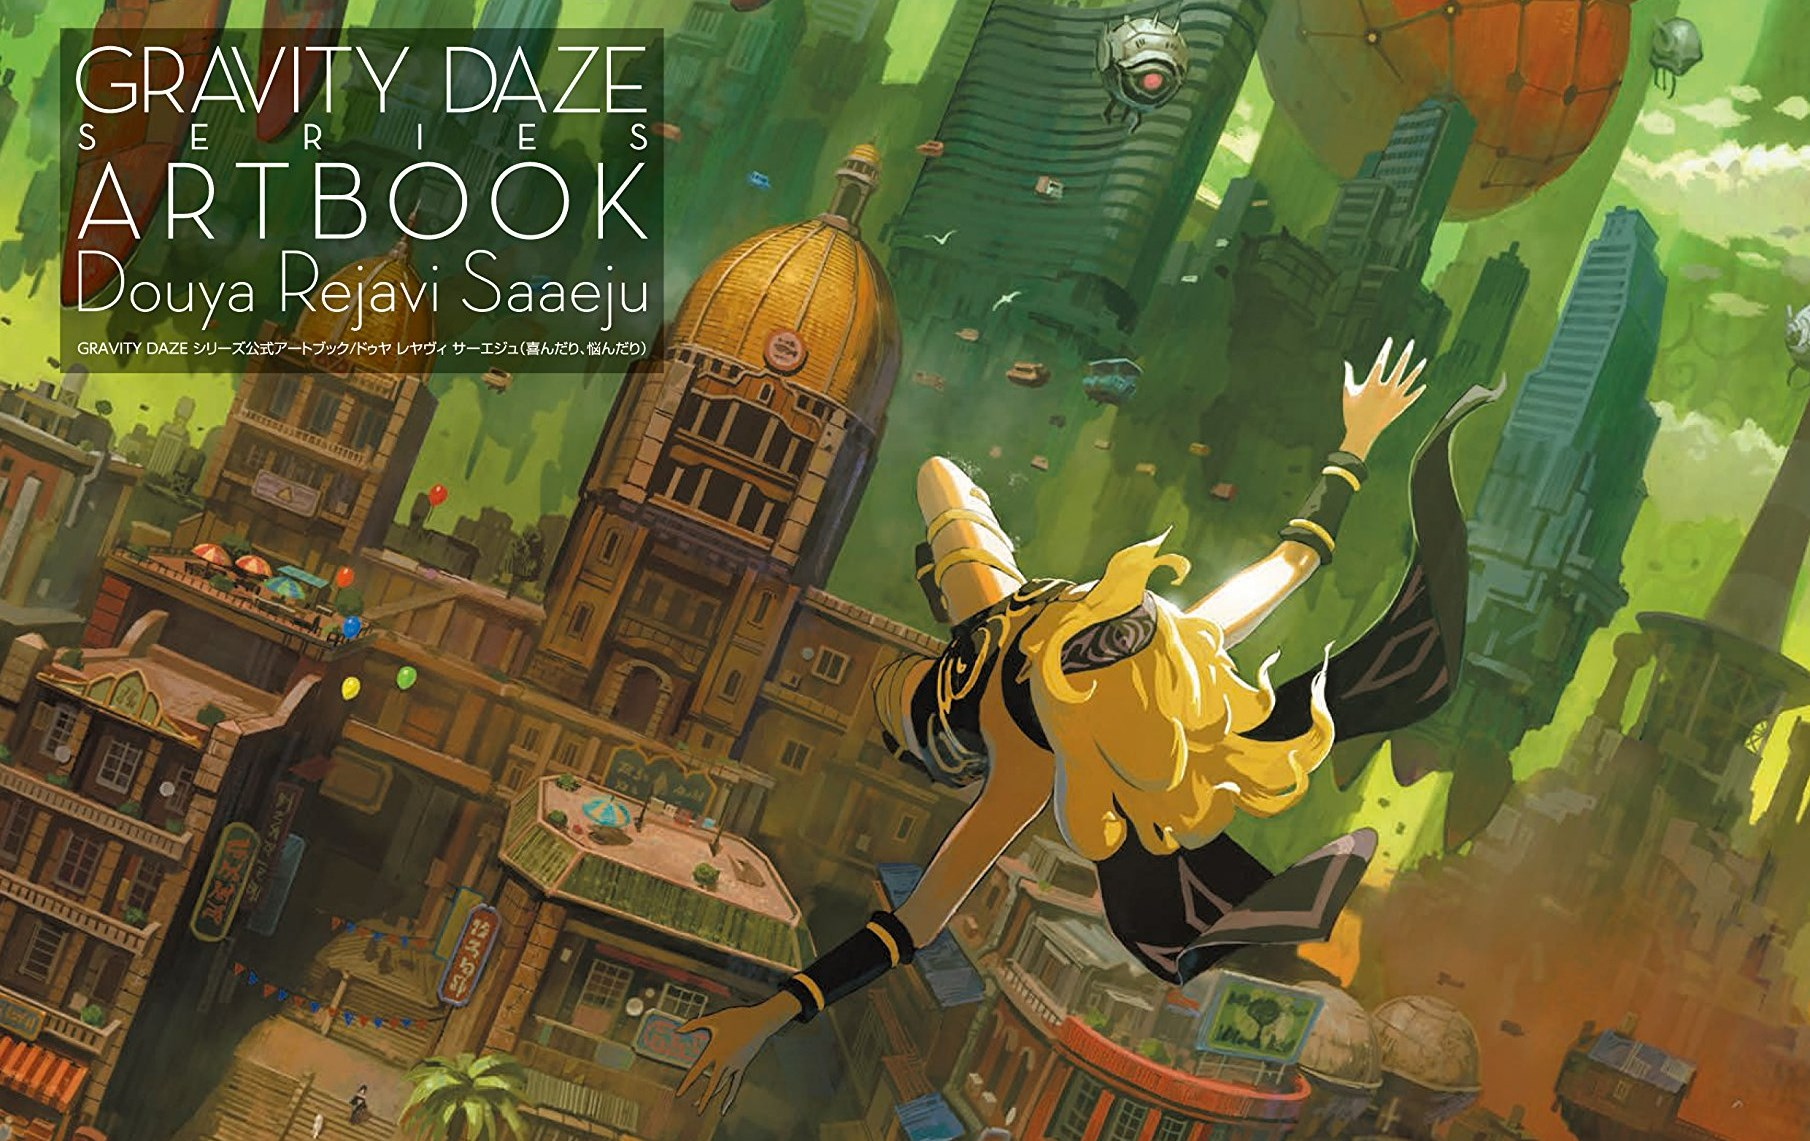 Team Gravity Reveals Cover Art and More Details for the Gravity Daze Series Art Book